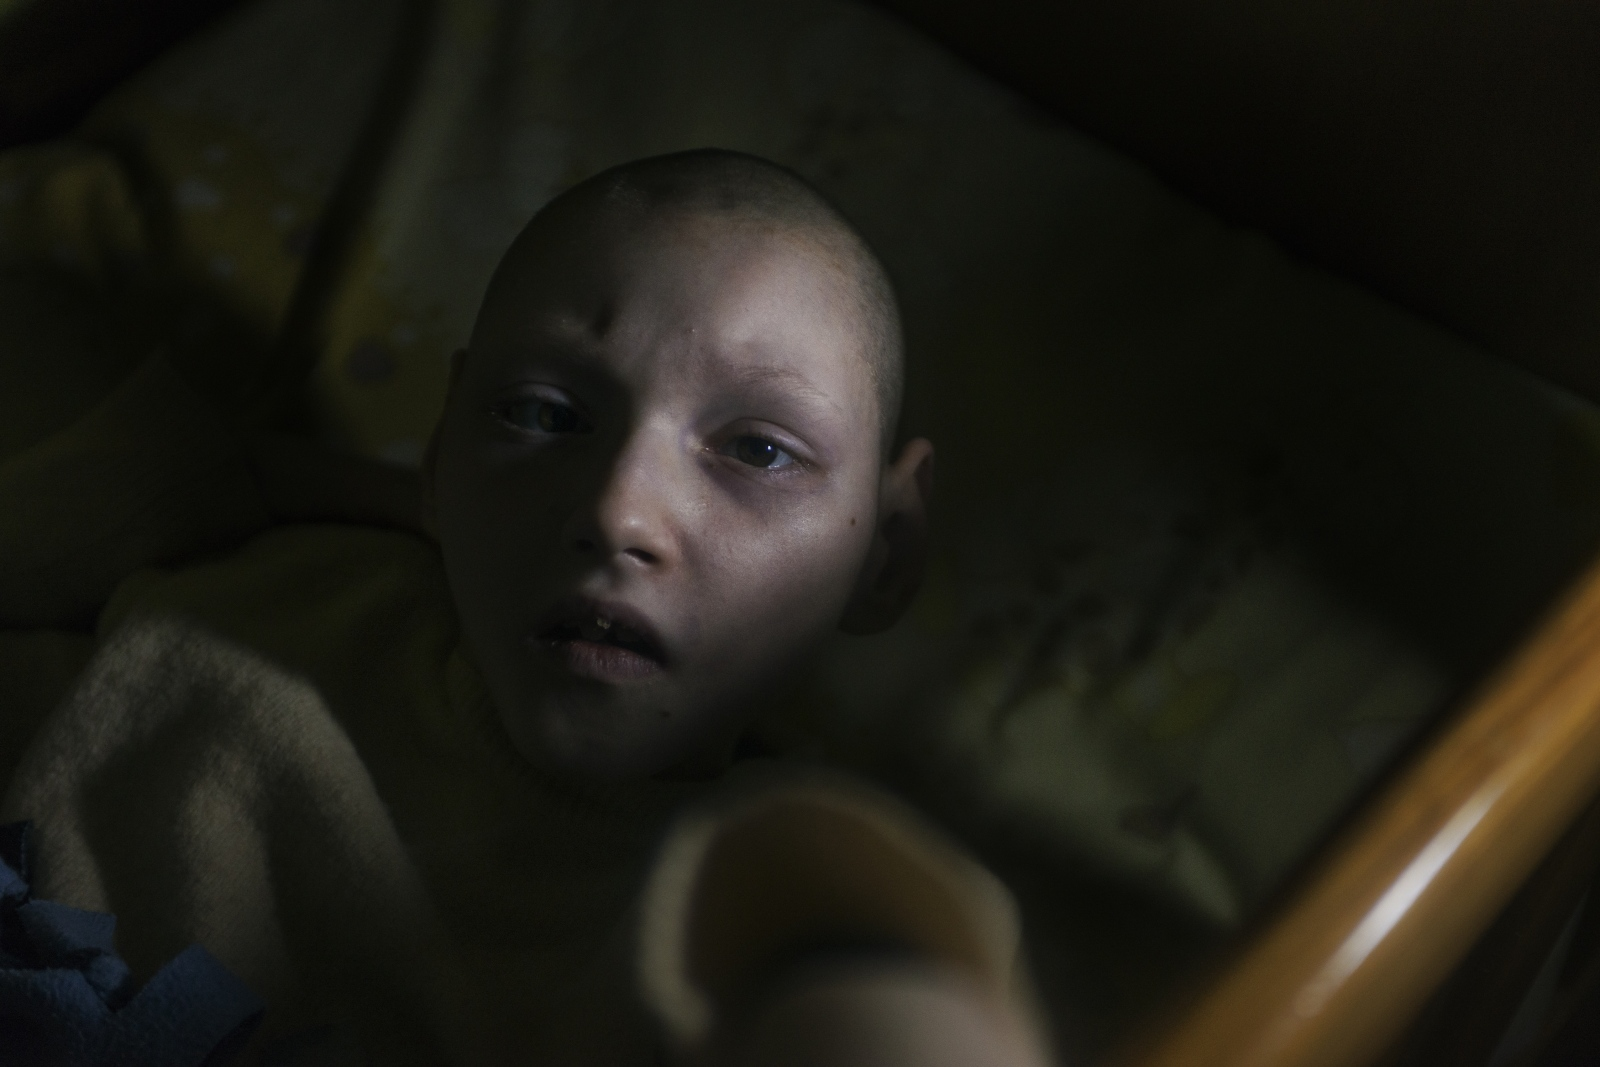 14 year old Dasha is nonverbal and often sobs loudly. One nanny reported that her condition is due to the fact that her mother was a whore. Some nannies shut the door to block out her cries which disturb the TV. The director has fired several staff members. However, citing Ukrainian labor laws, they sued and had to be reinstated.